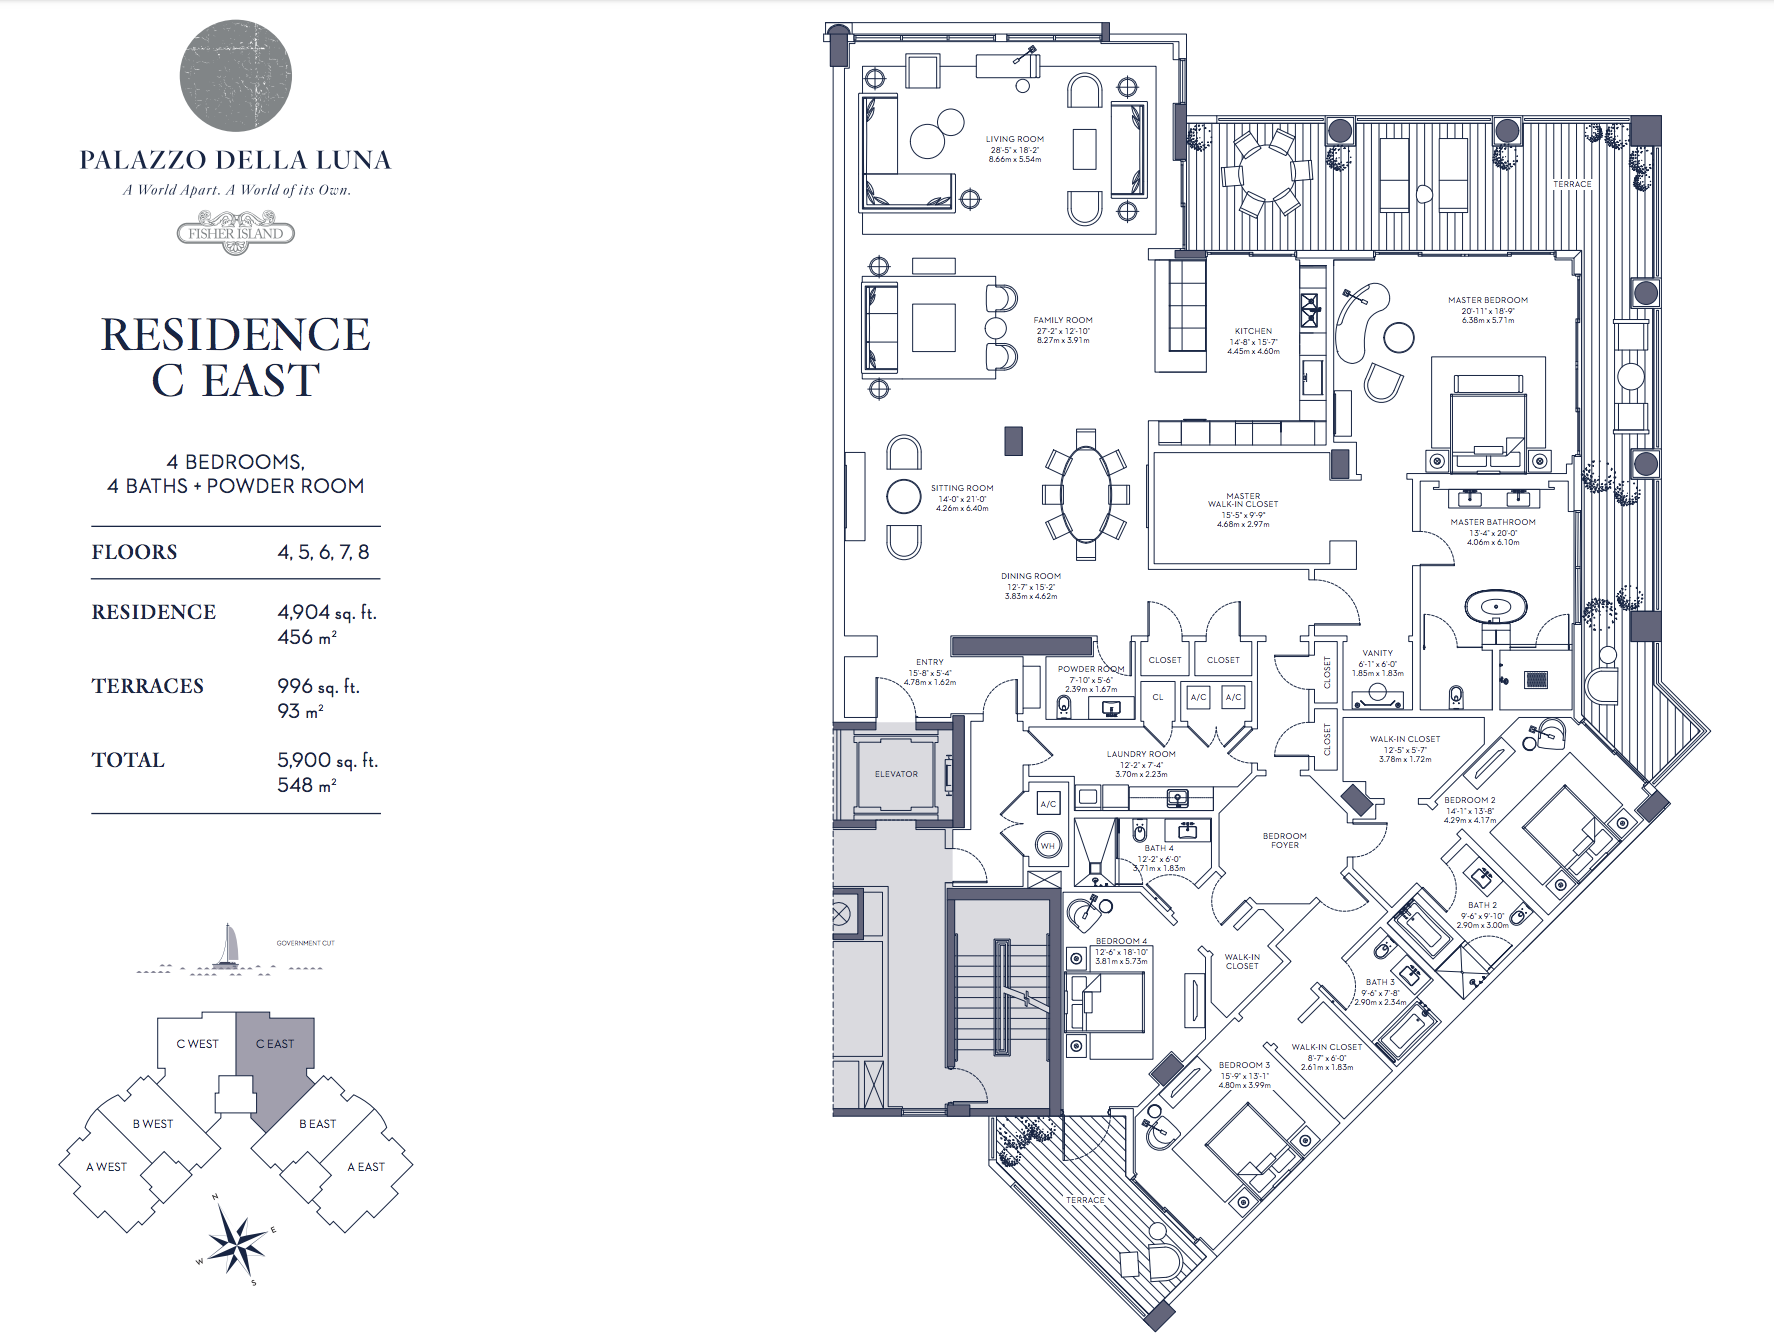 Palazzo della Luna| Residence C East Floors 4,5,6,7 and 8